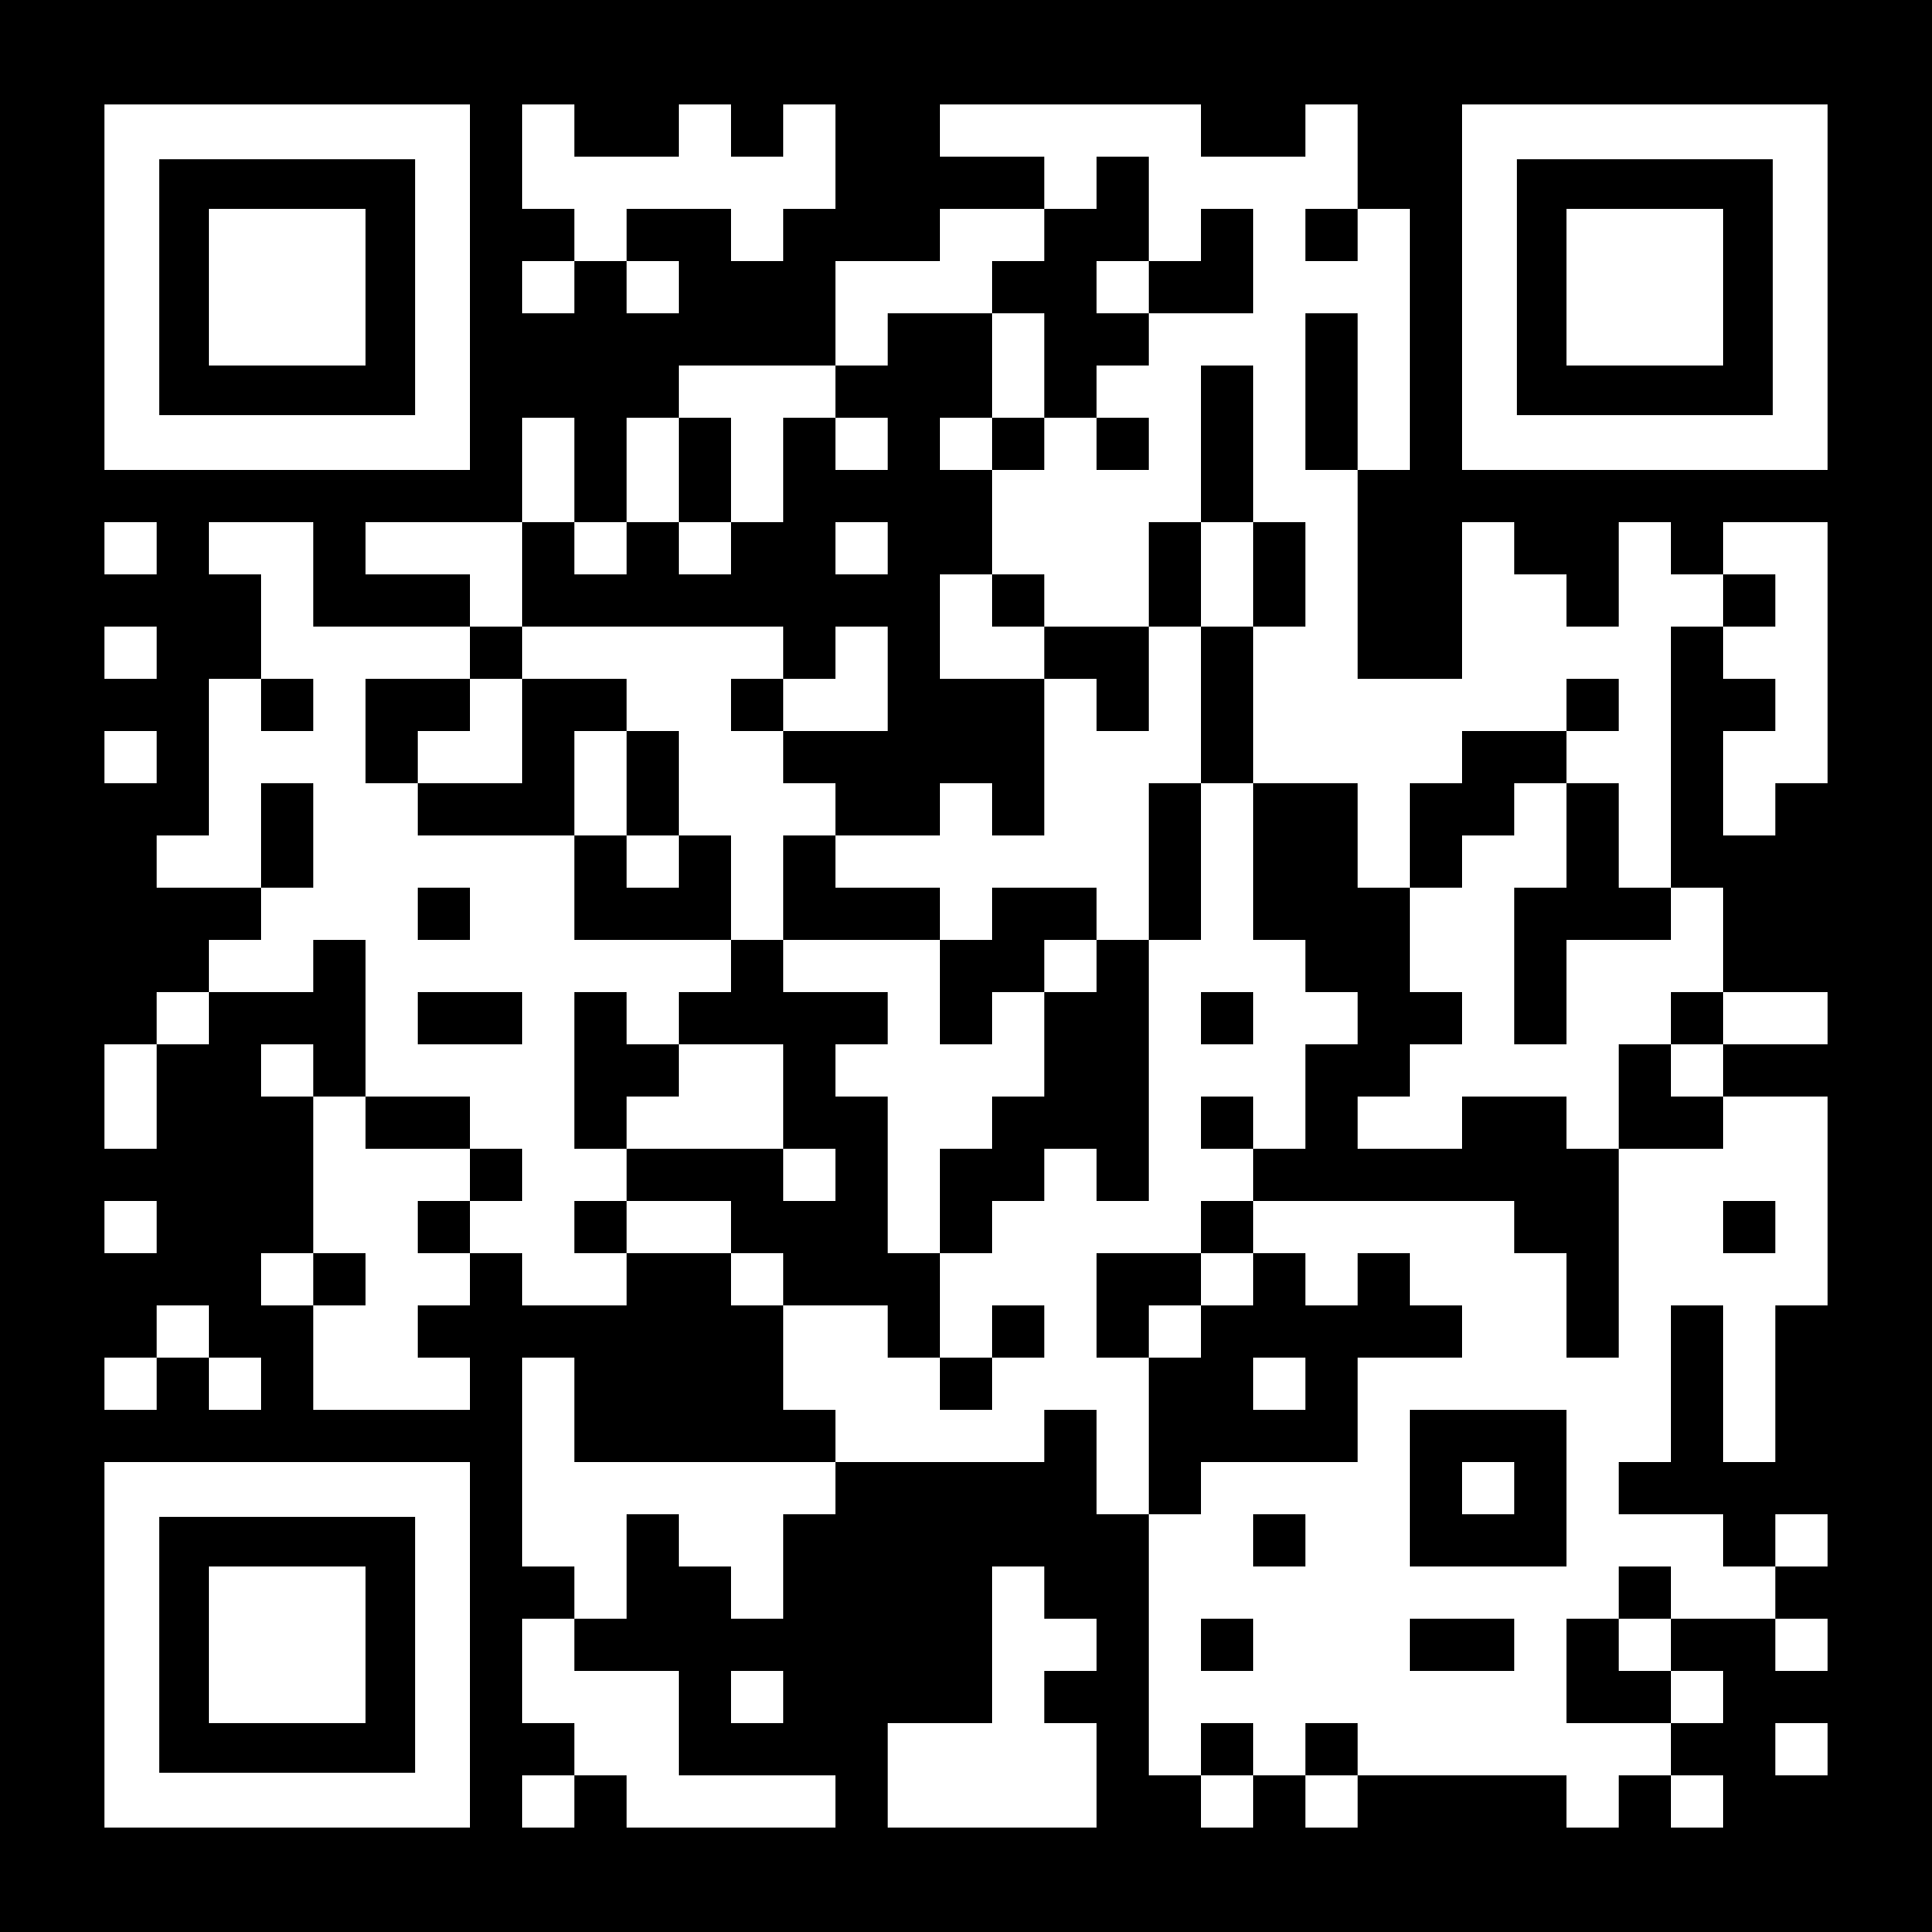 SCAN ME...